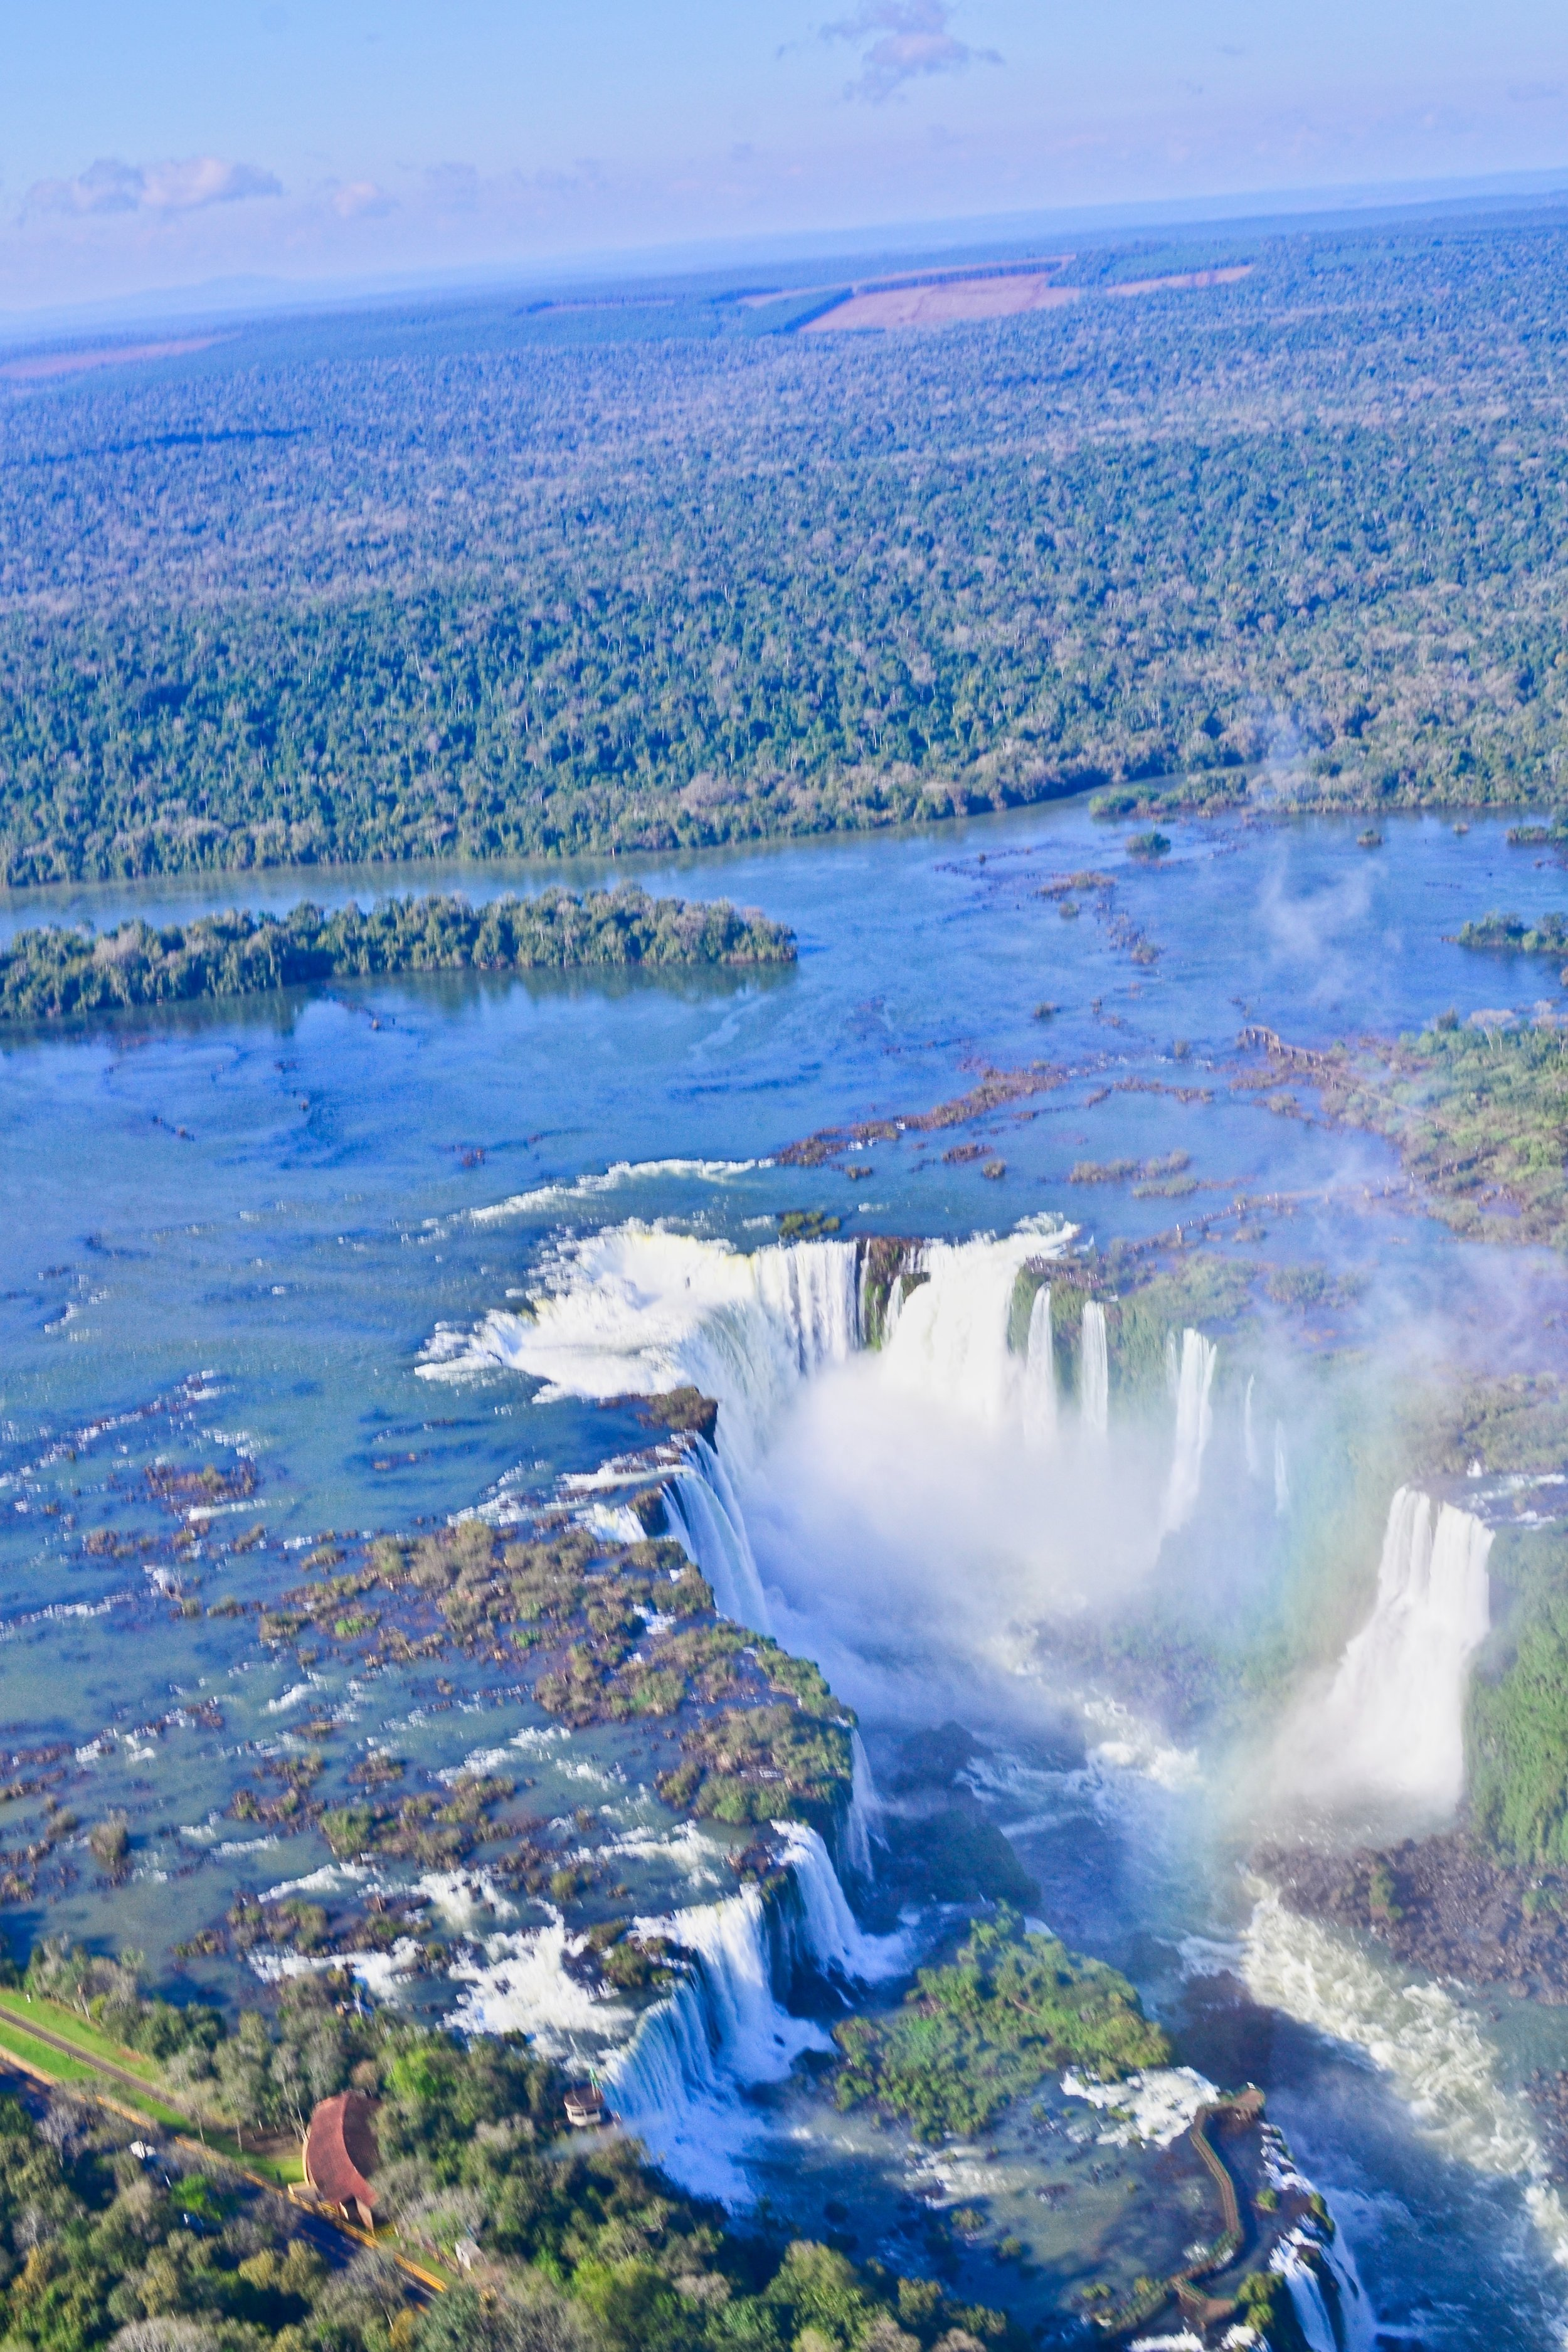 View of Iguazu Falls from a Helicopter